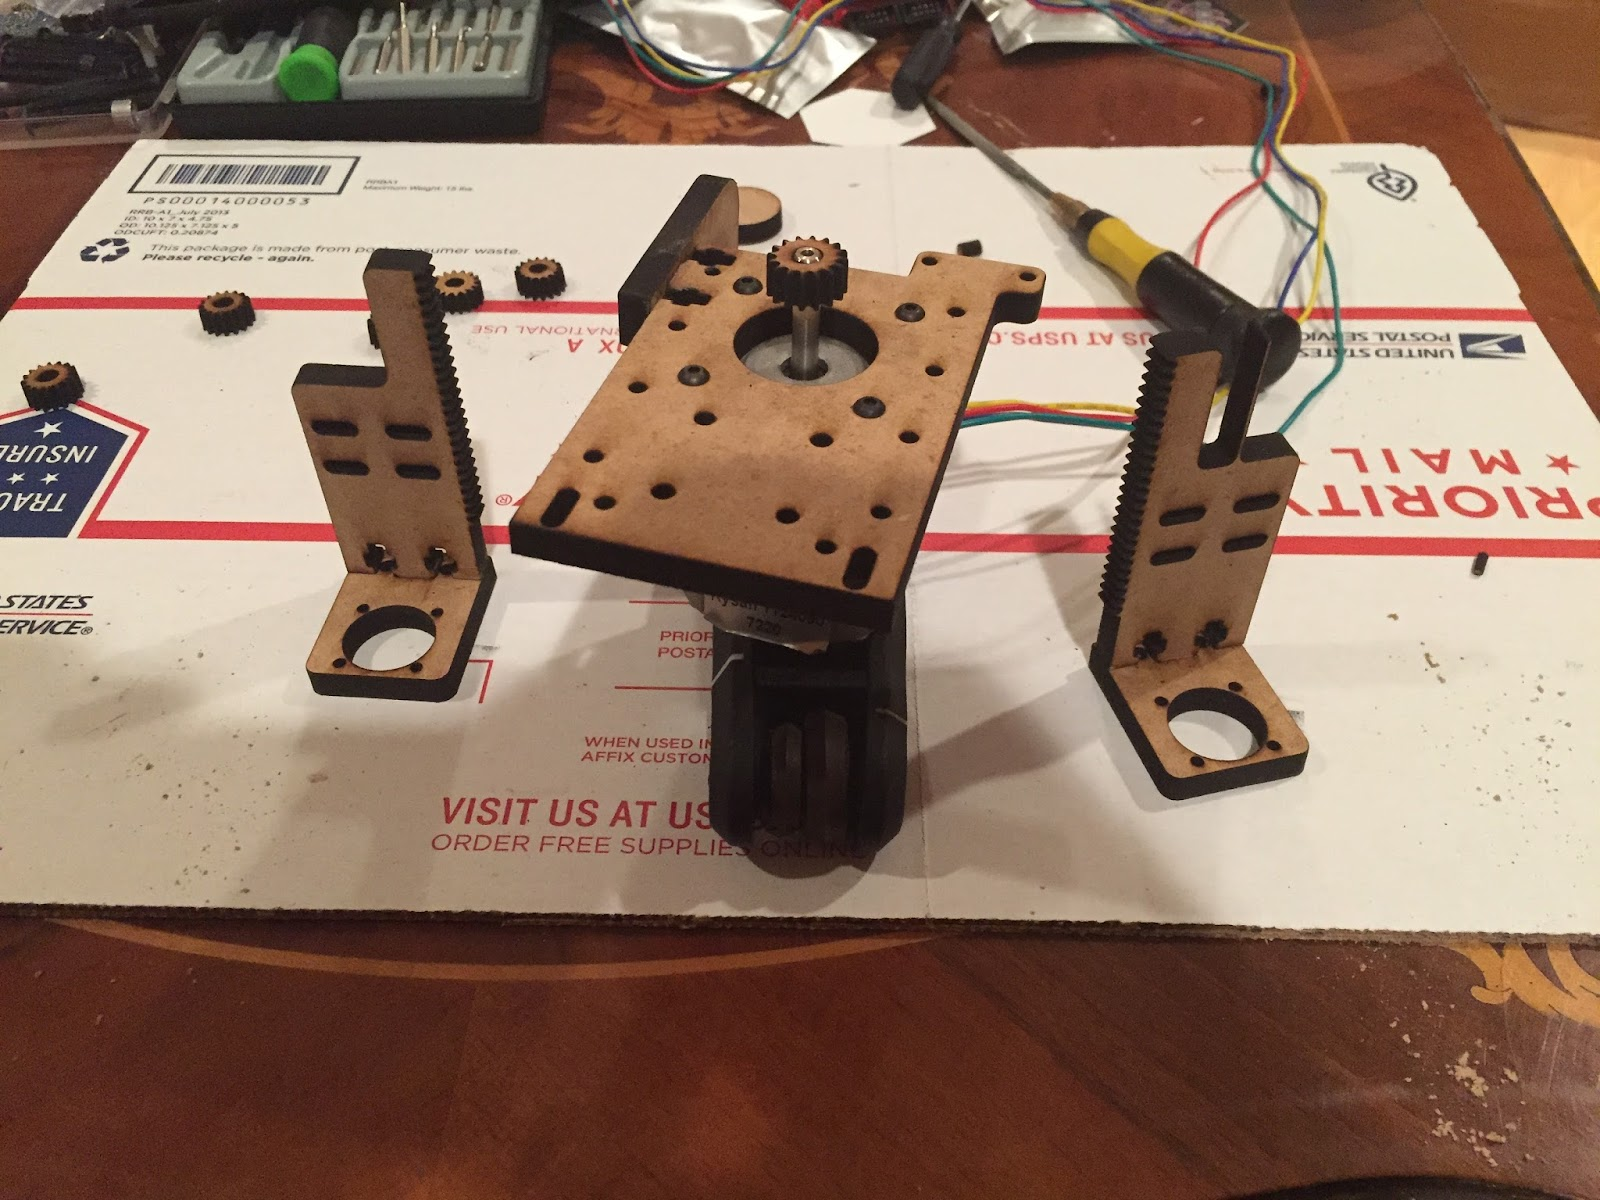 Rays Variant Of Peter Head Fully Laser Cut Google Groups Circuit Board Under The Waterjet Ready To Be Sliced Pieces Oh And Gear Rack All Perfectly Mate Interact Well I Handle My Cutting Much Like Cnc Meaning That Offset For Kerf By Doing